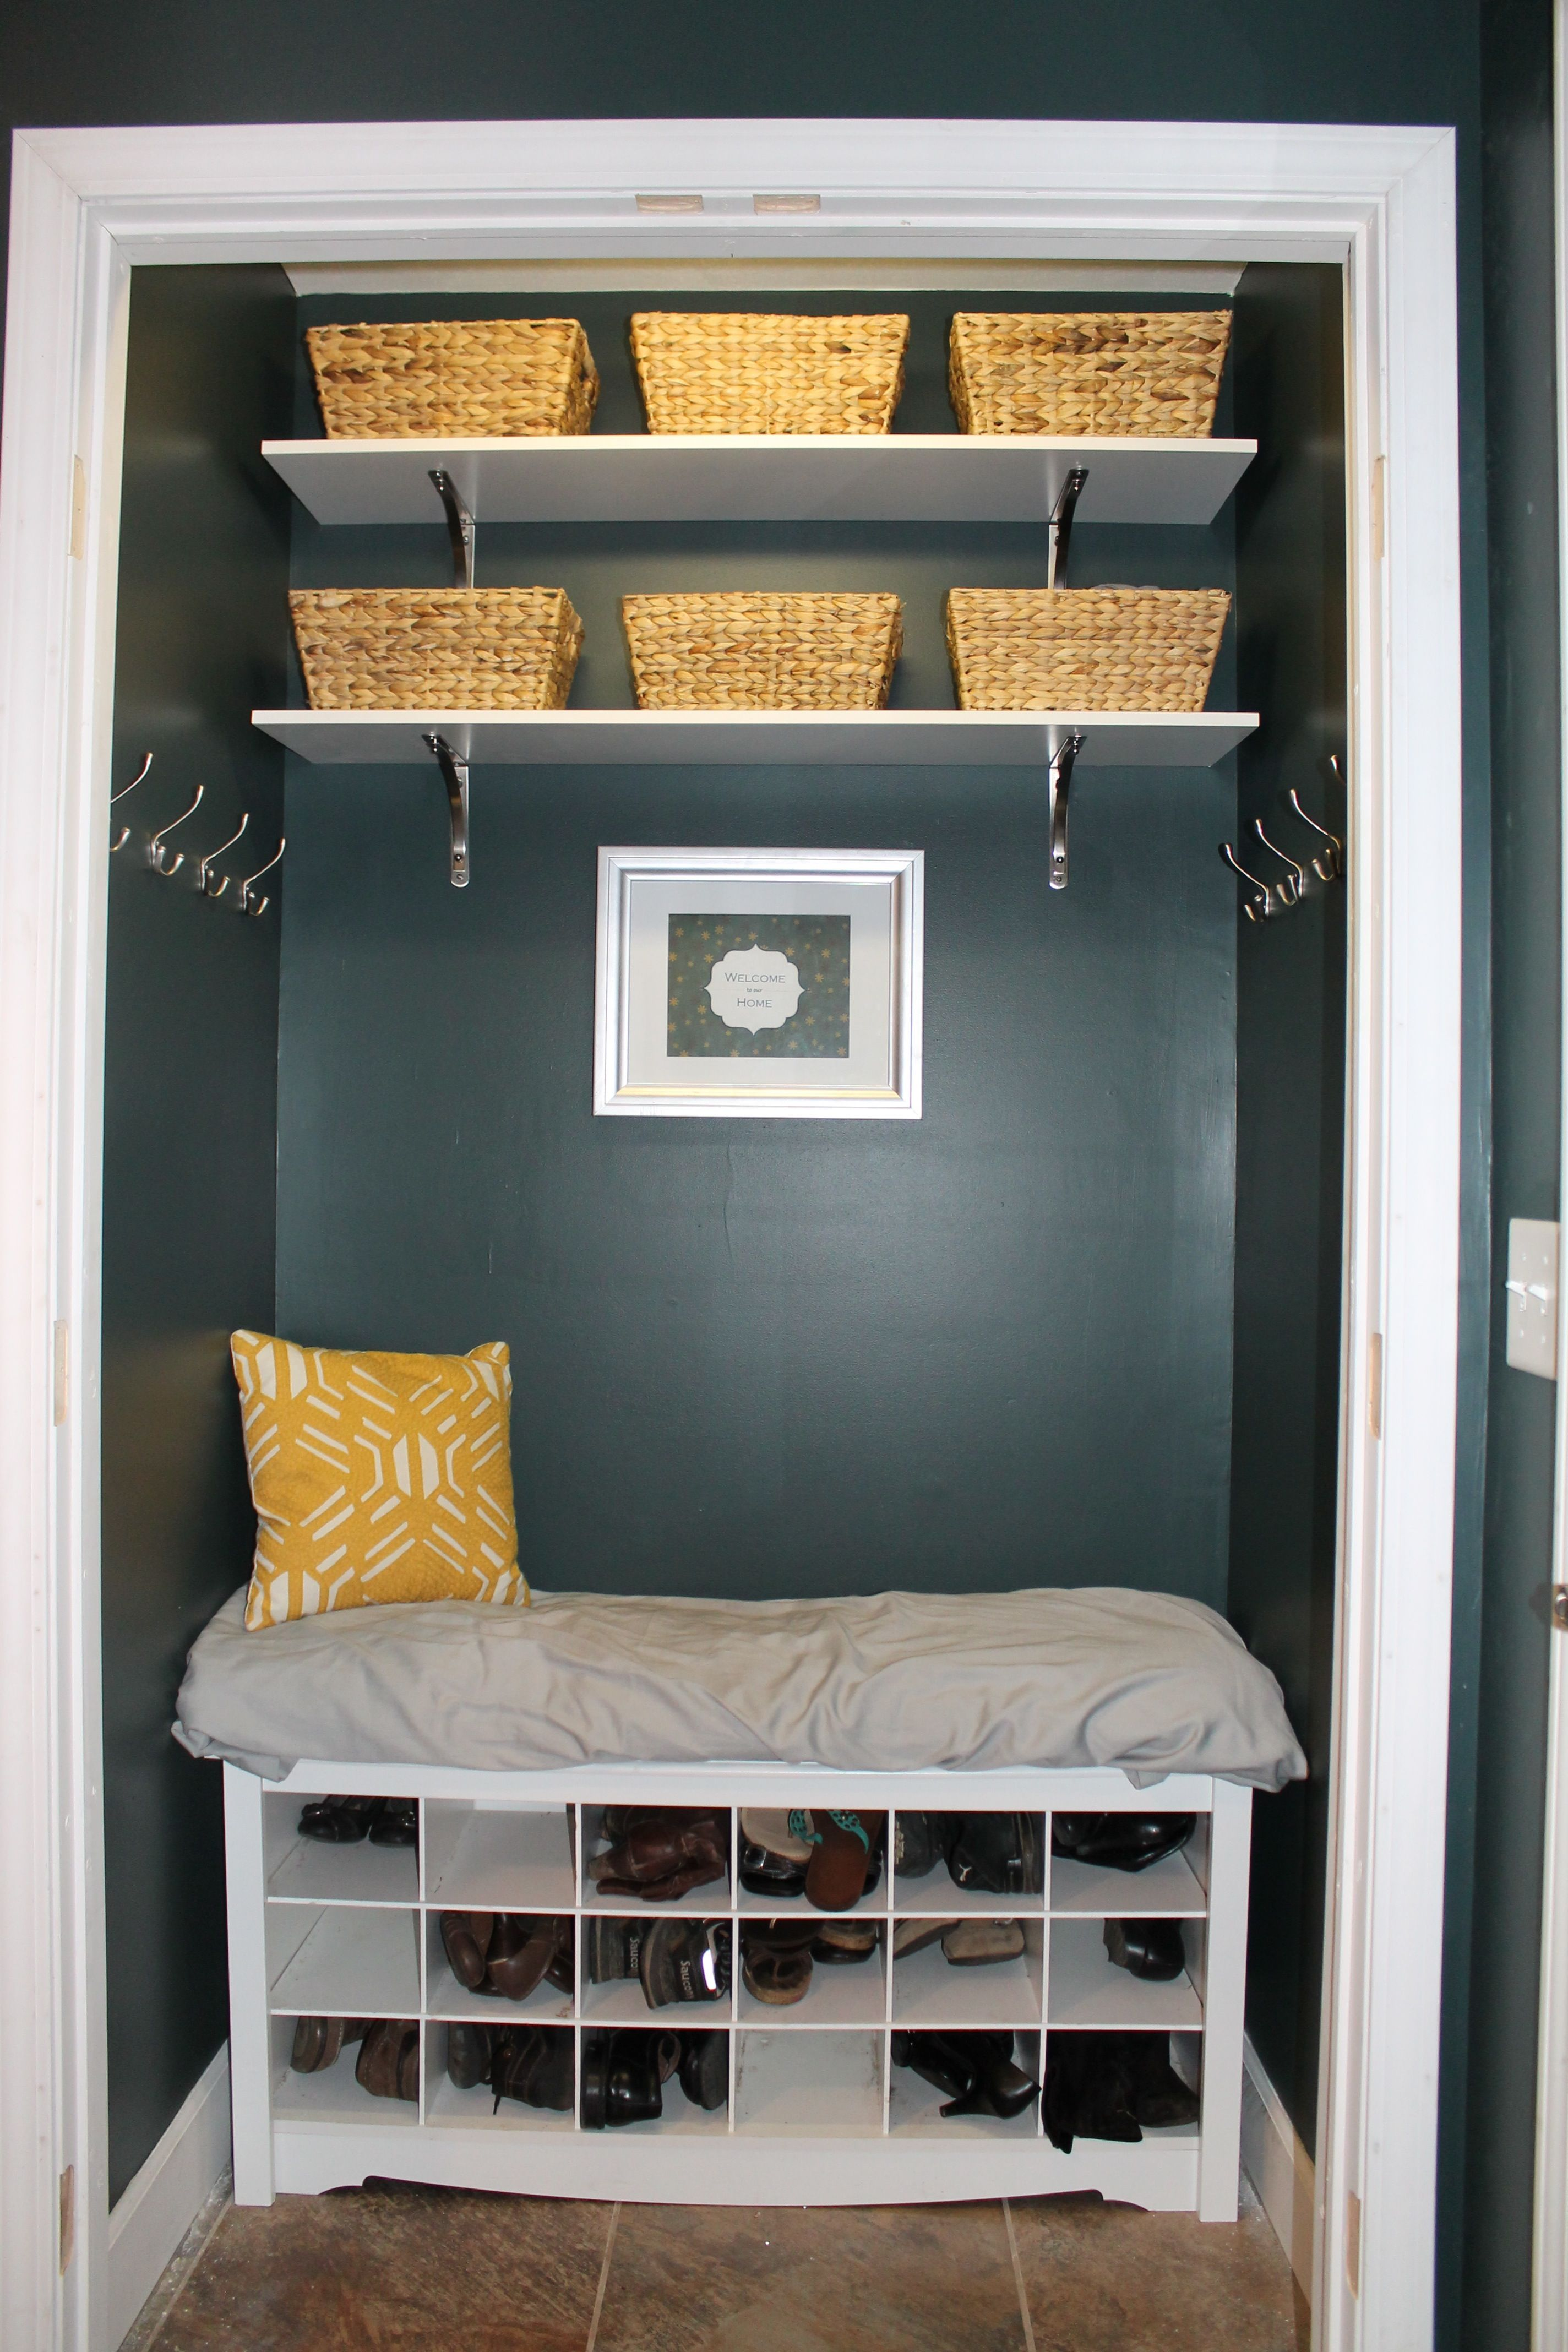 Turn Foyer Into Mudroom : Coat closet turned into mudroom nook perfect for small